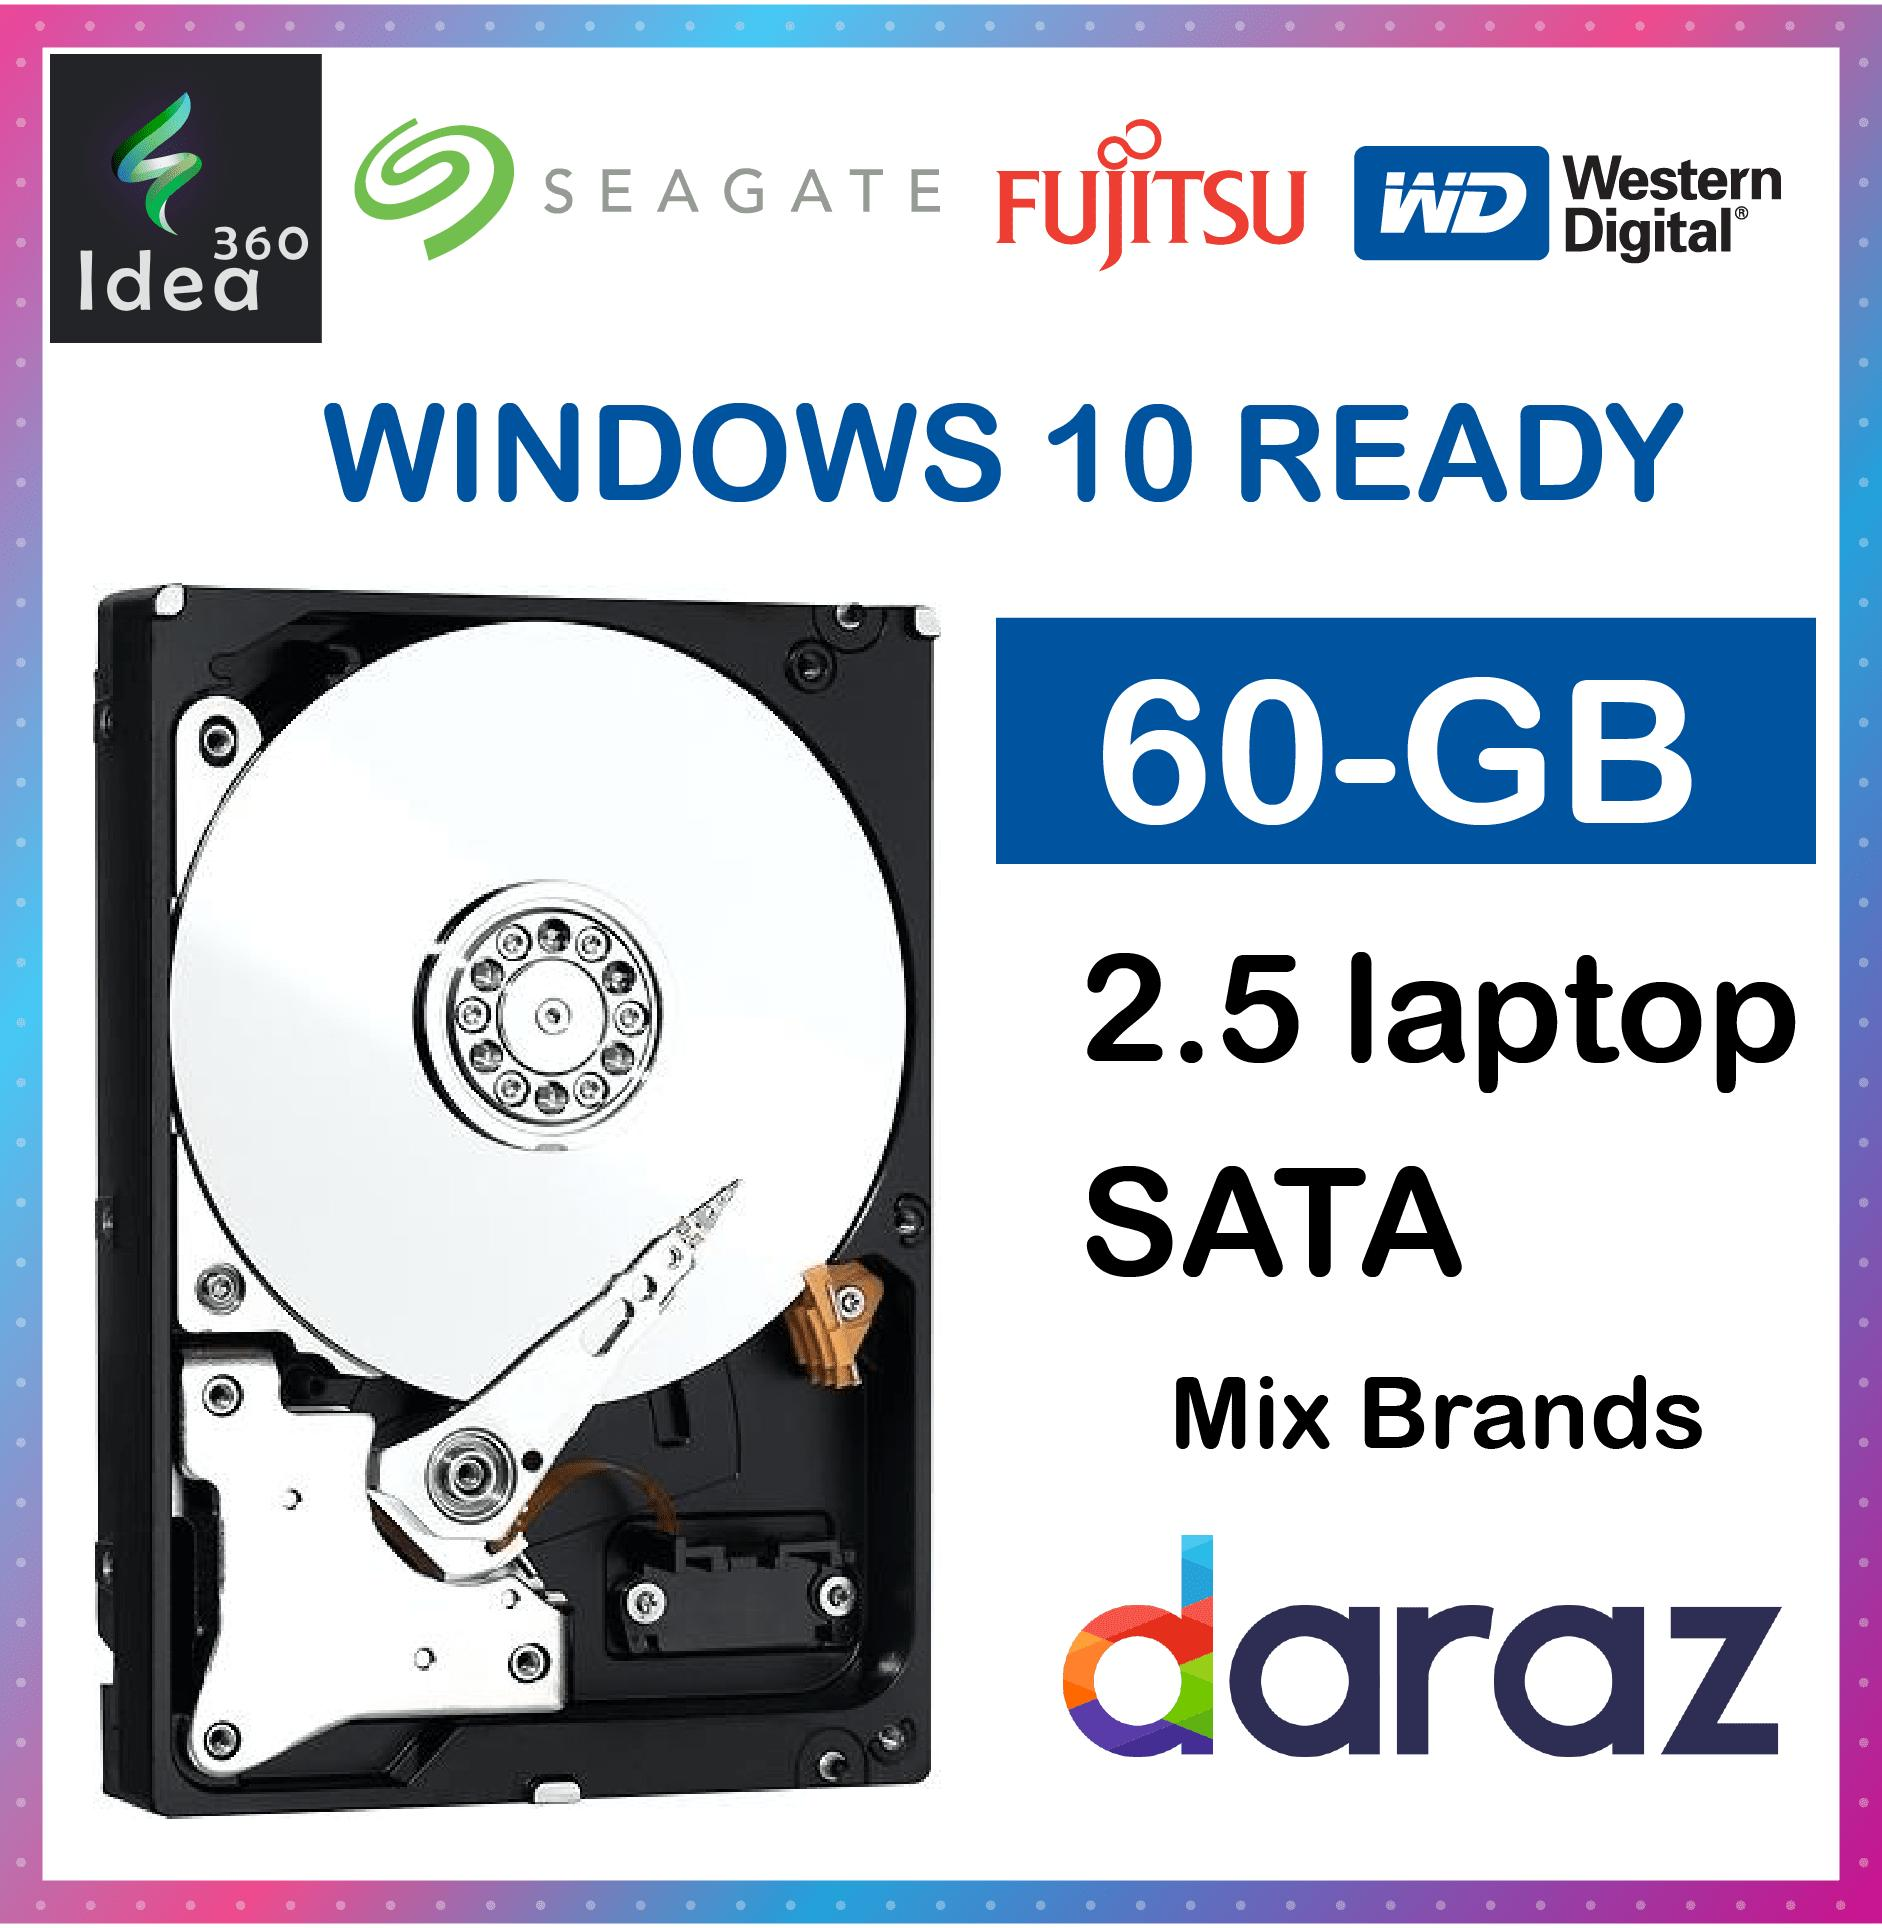 LAPTOP 60Gb 60 gb 2 5 SATA Internal Hard Drive For Laptop/PS3/Mac (60 GB)